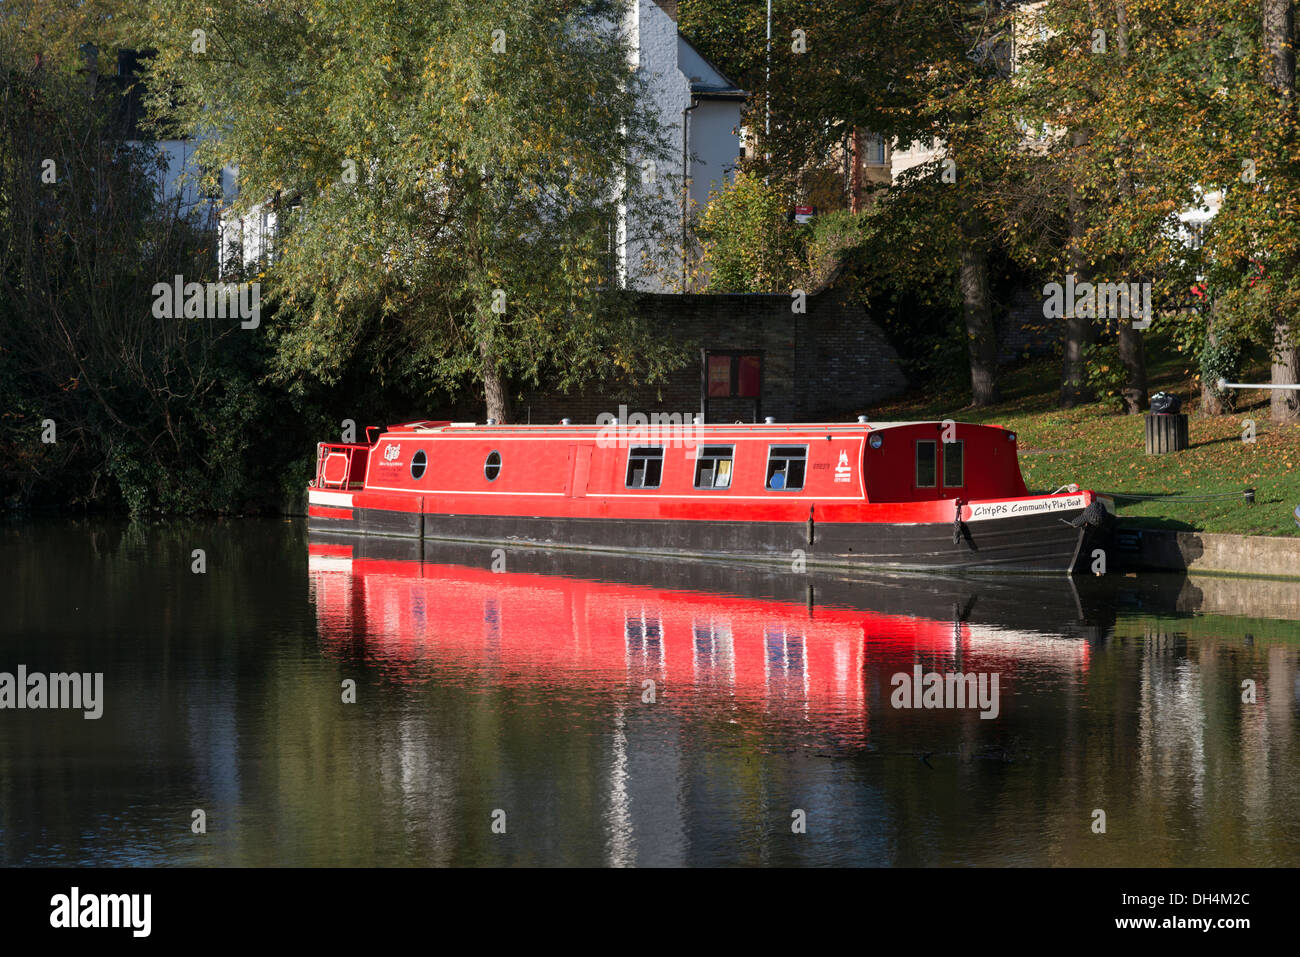 A red longboat or narrowboat moored on the River Cam Cambridge UK - Stock Image